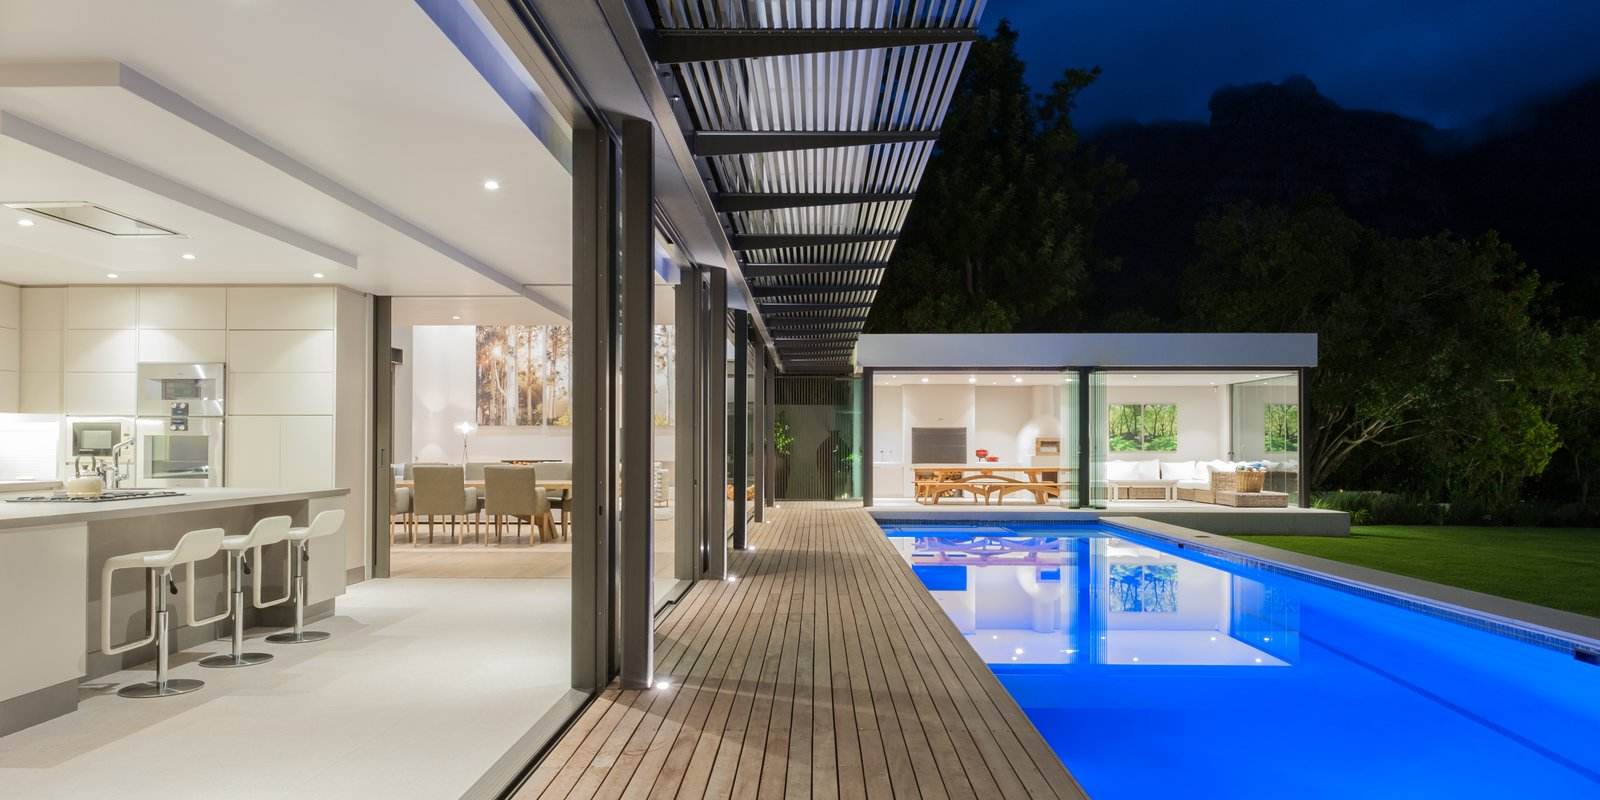 Pool and kitchen flow  Lords House by Rene Frank